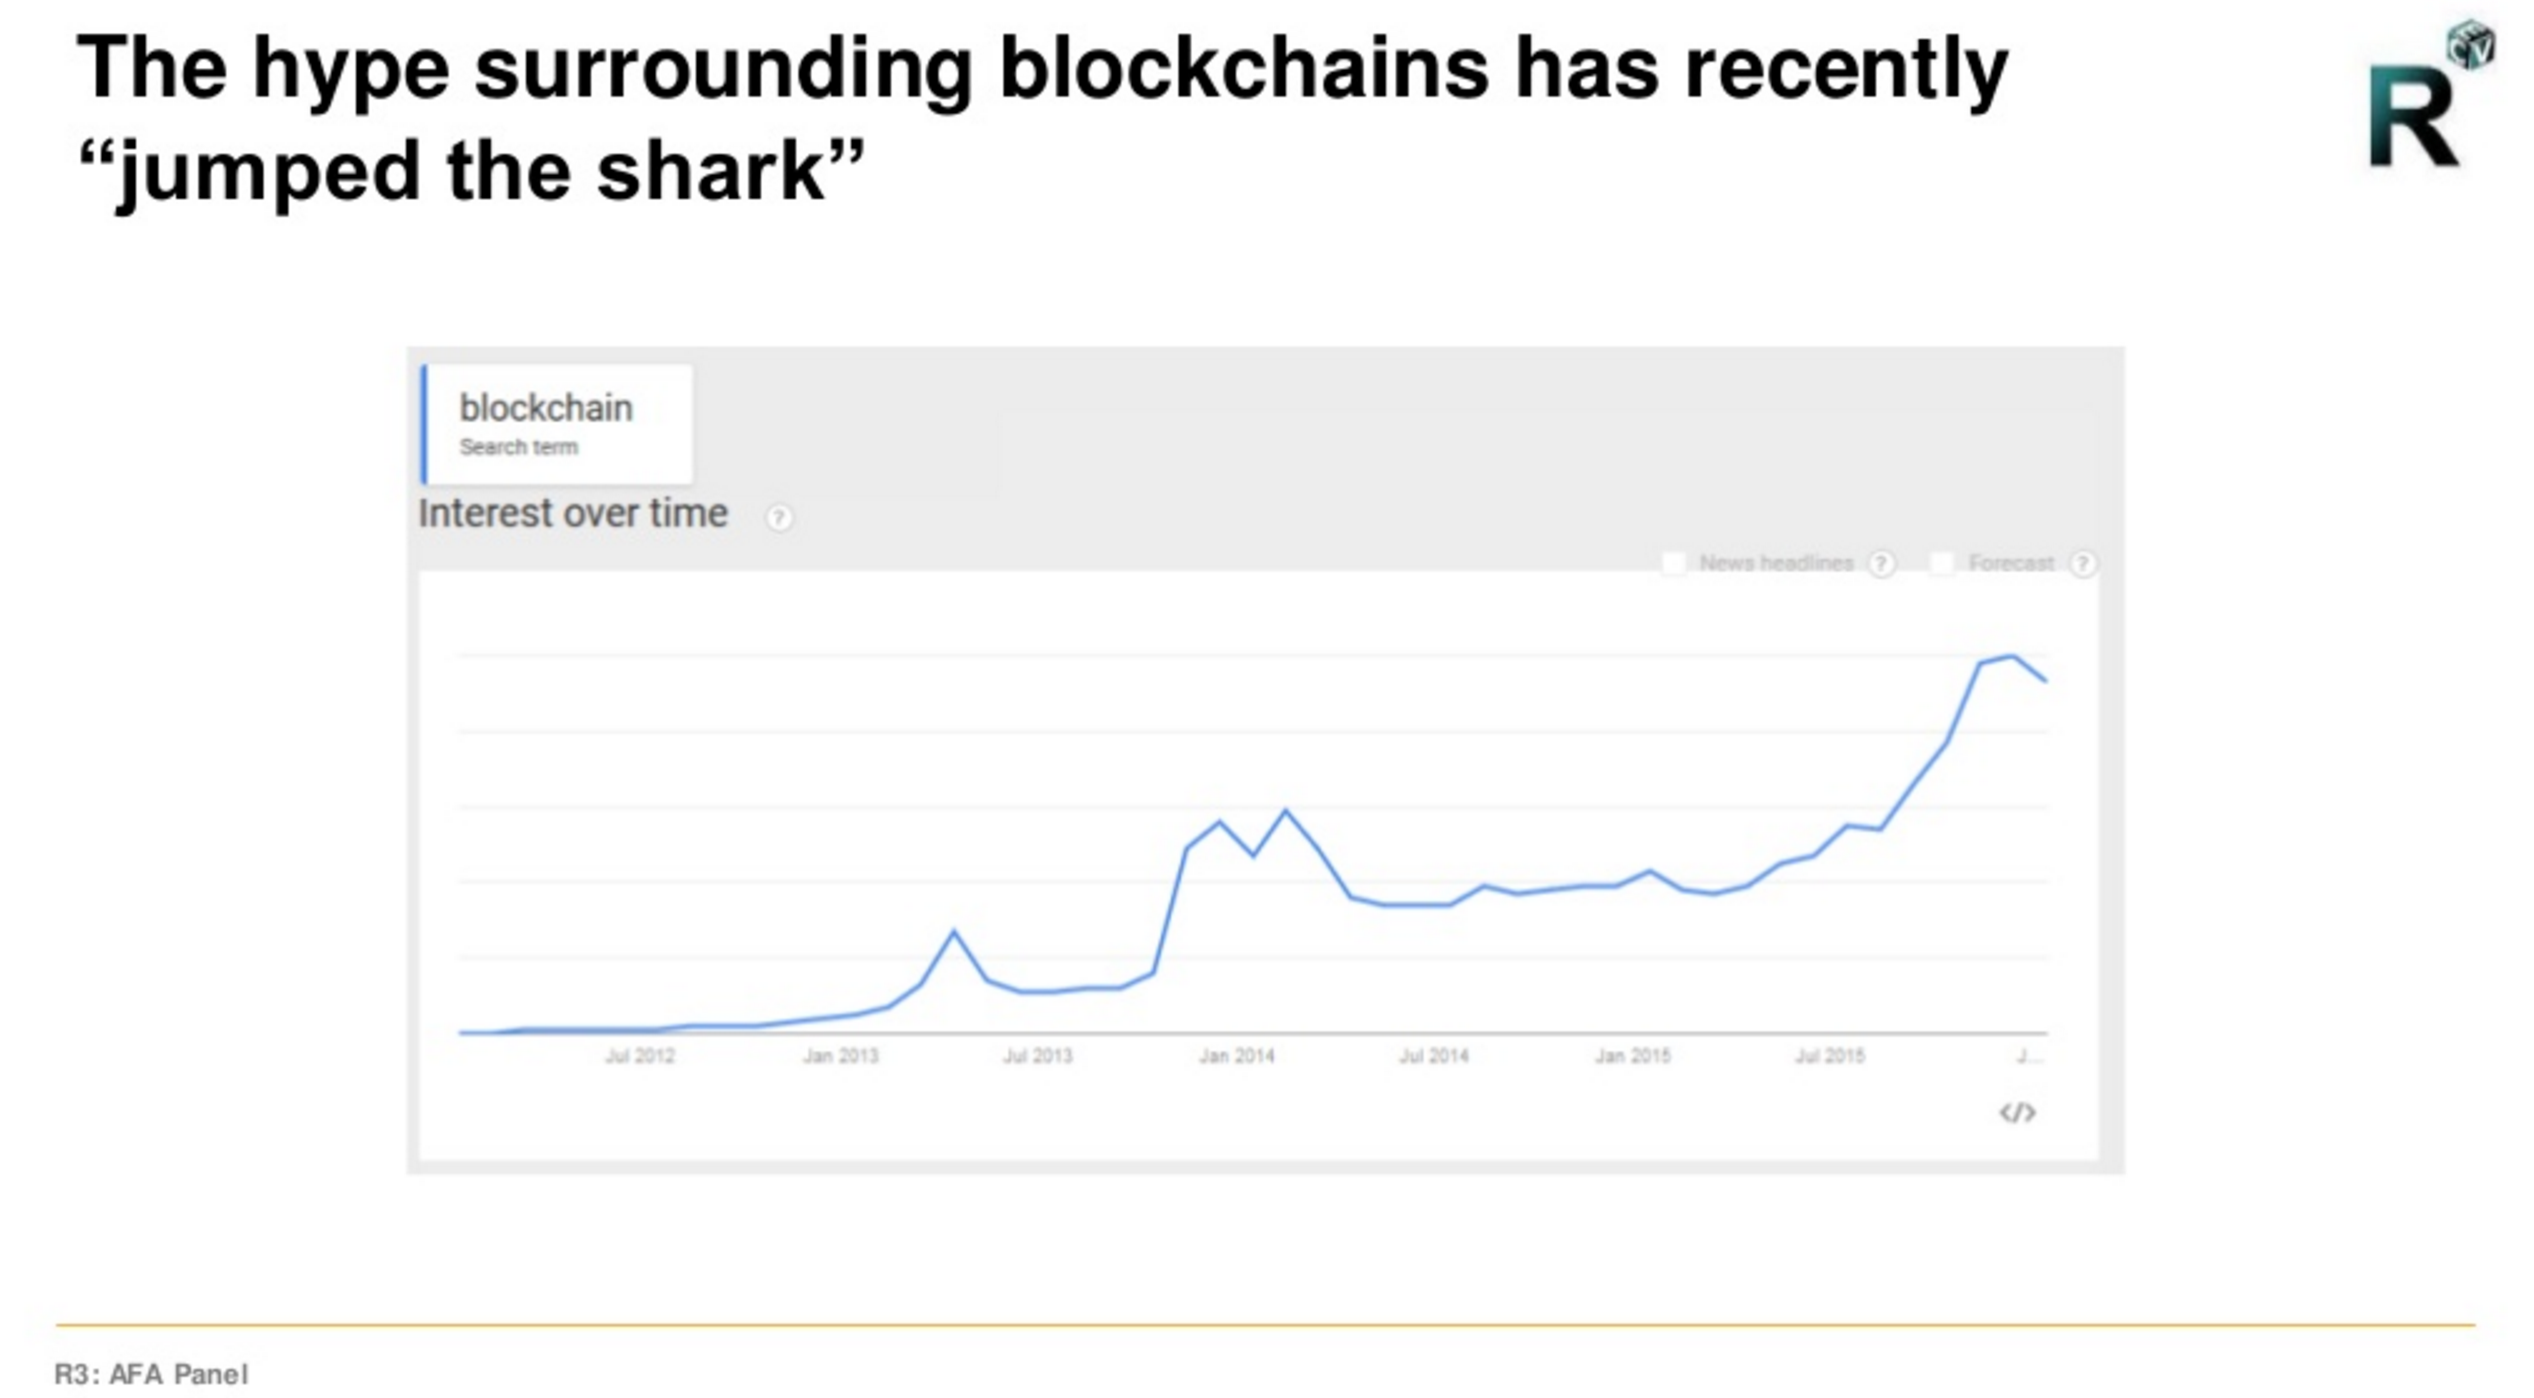 Have We Reached Peak Blockchain Hype?